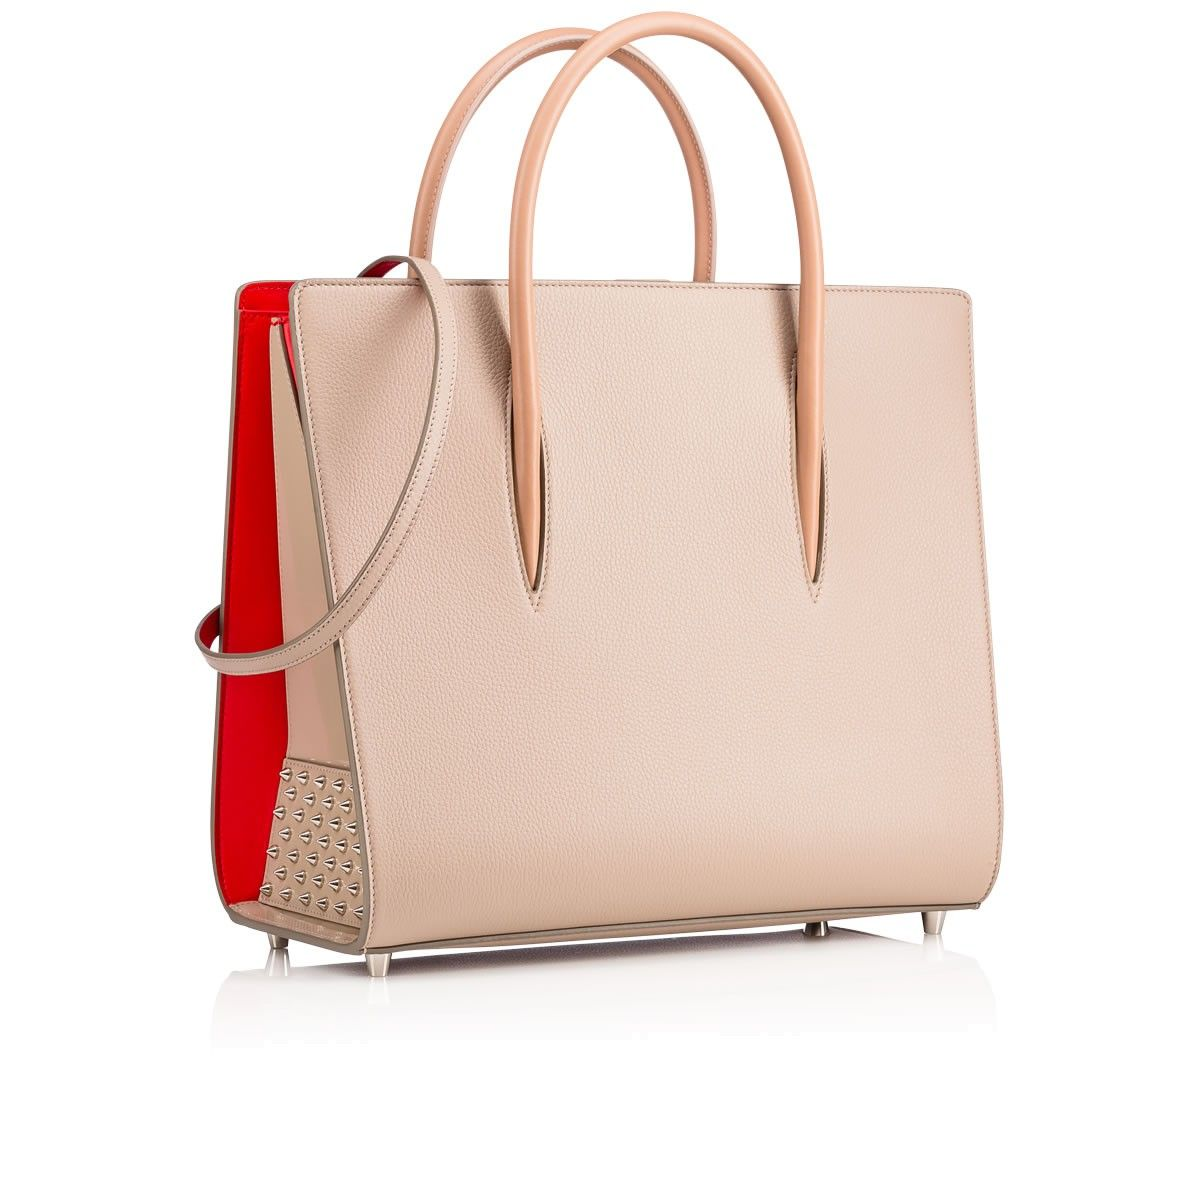 Paloma Large Spiked Leather Tote - Beige Christian Louboutin 1aeD8ML2rp